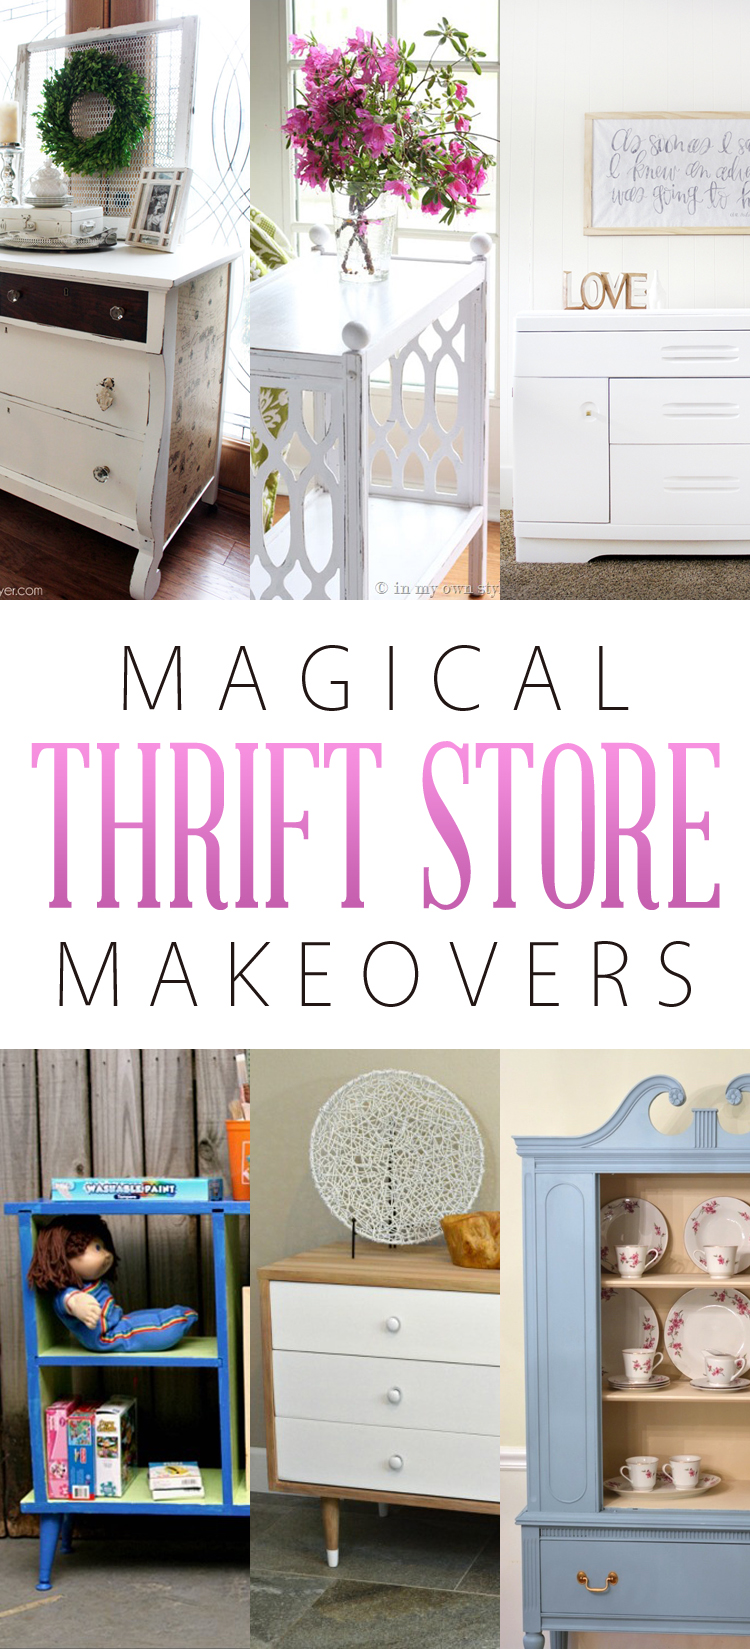 http://thecottagemarket.com/wp-content/uploads/2015/11/ThriftShop-TOWER-001.jpg